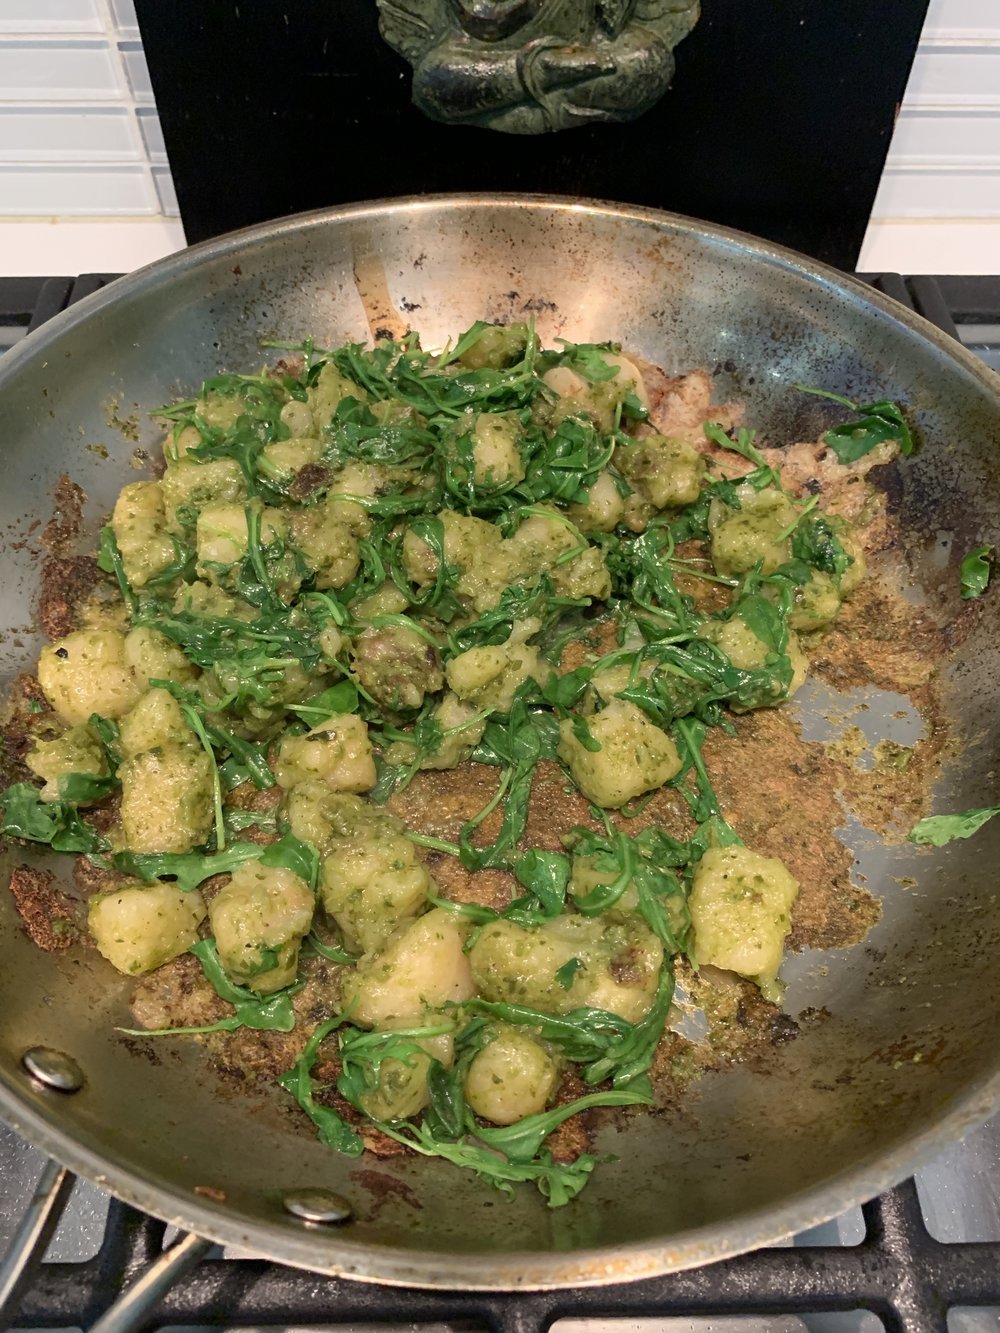 Cauliflower gnocchi with arugula + vegan kale cashew pesto!